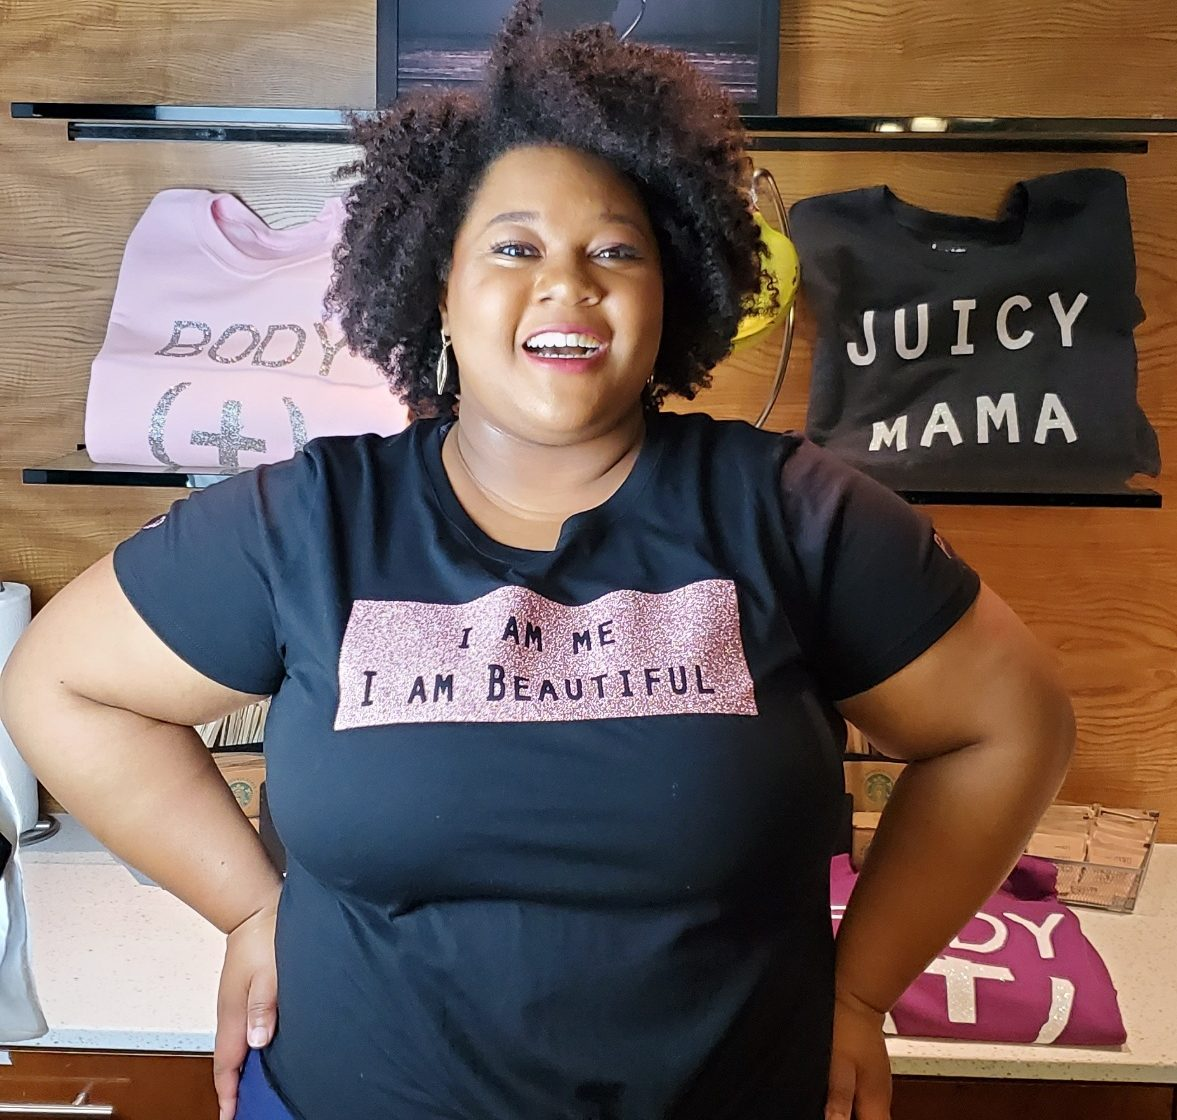 I am me, I am beautiful plus size tee shirt from Plurvy